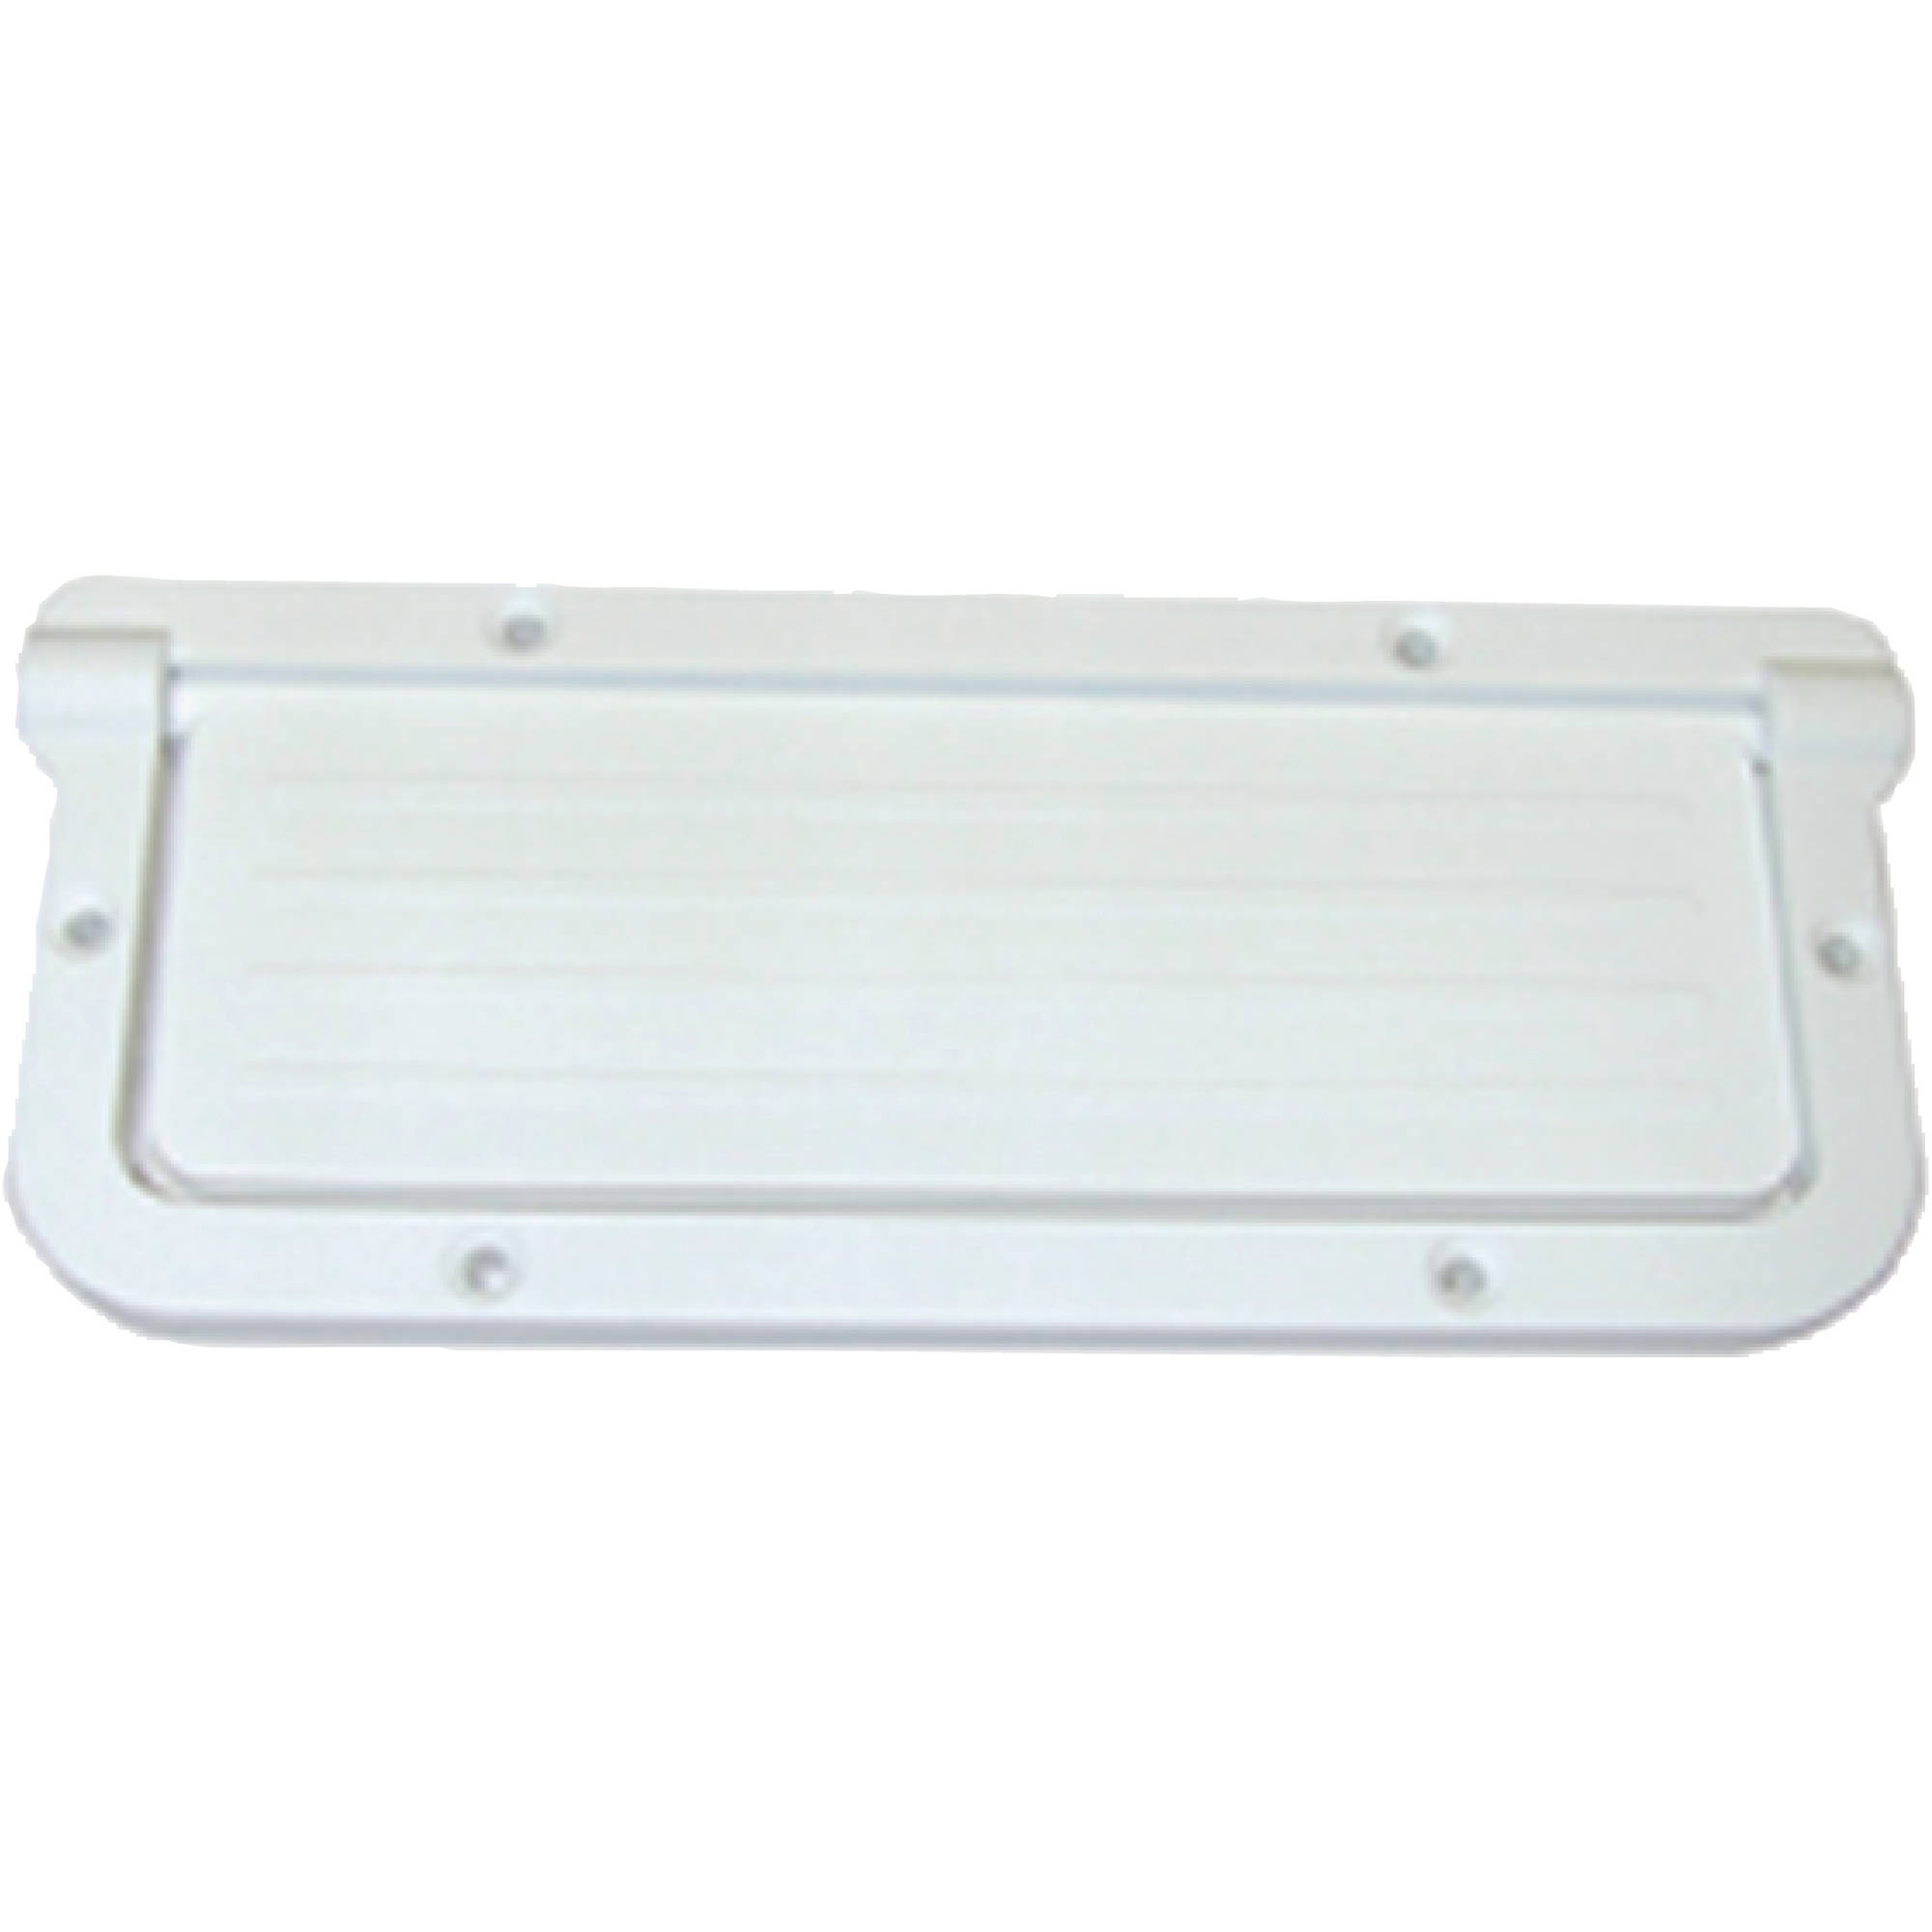 "T-H Marine Large Rectangular Scupper fits 2 x 5-1 2"" Hole, White by T-H Marine Supplies"